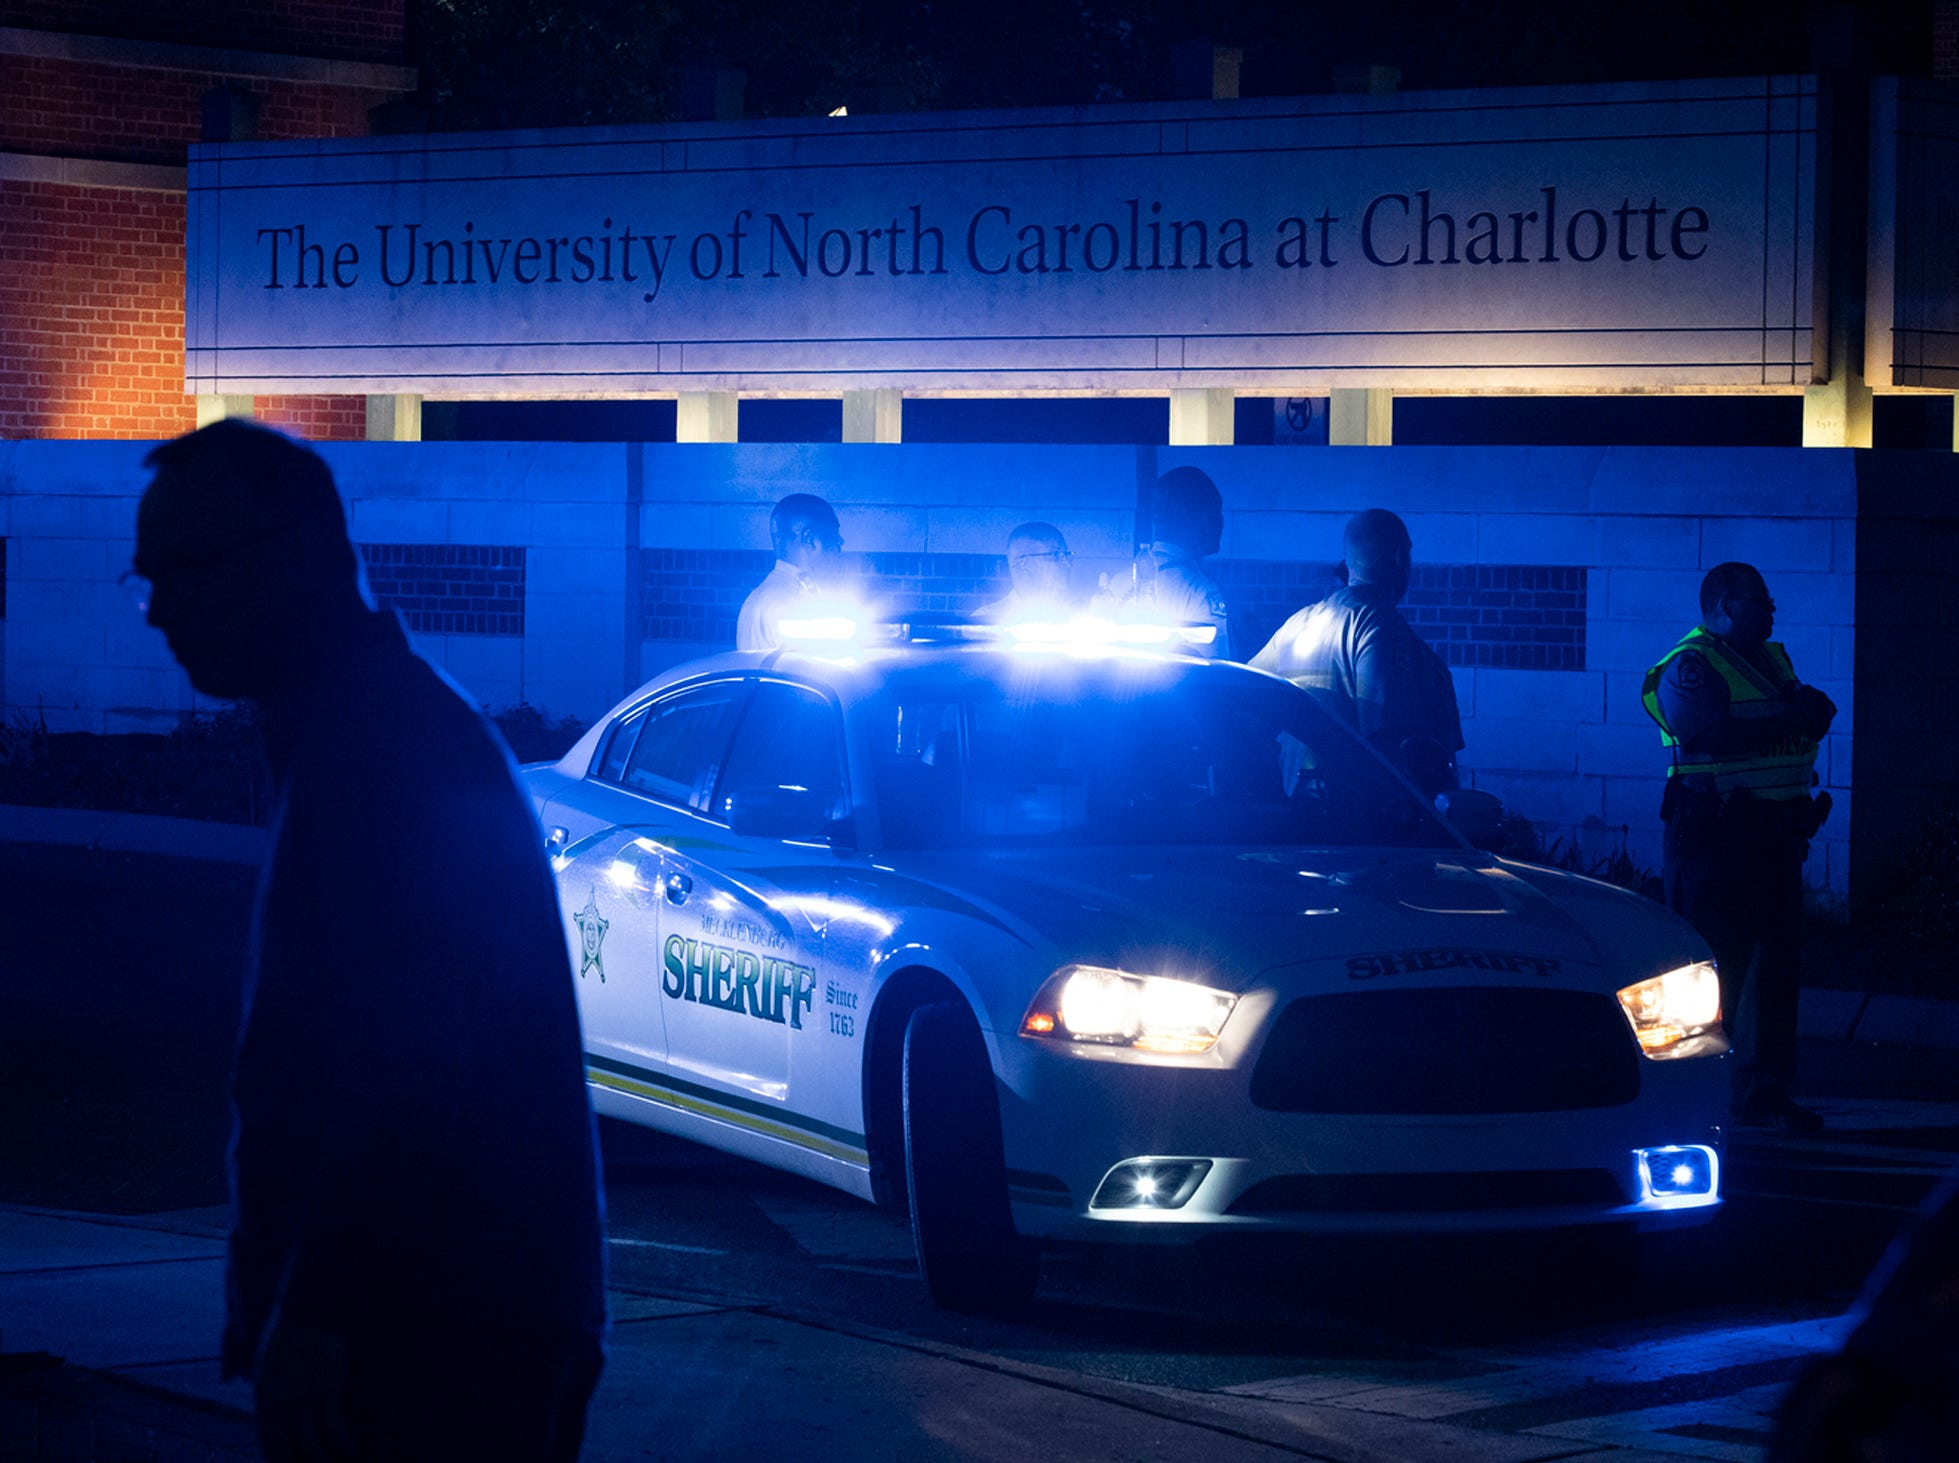 Police secure the main entrance to UNC Charlotte after a fatal shooting at the school, Tuesday, April 30, 2019, in Charlotte, N.C.